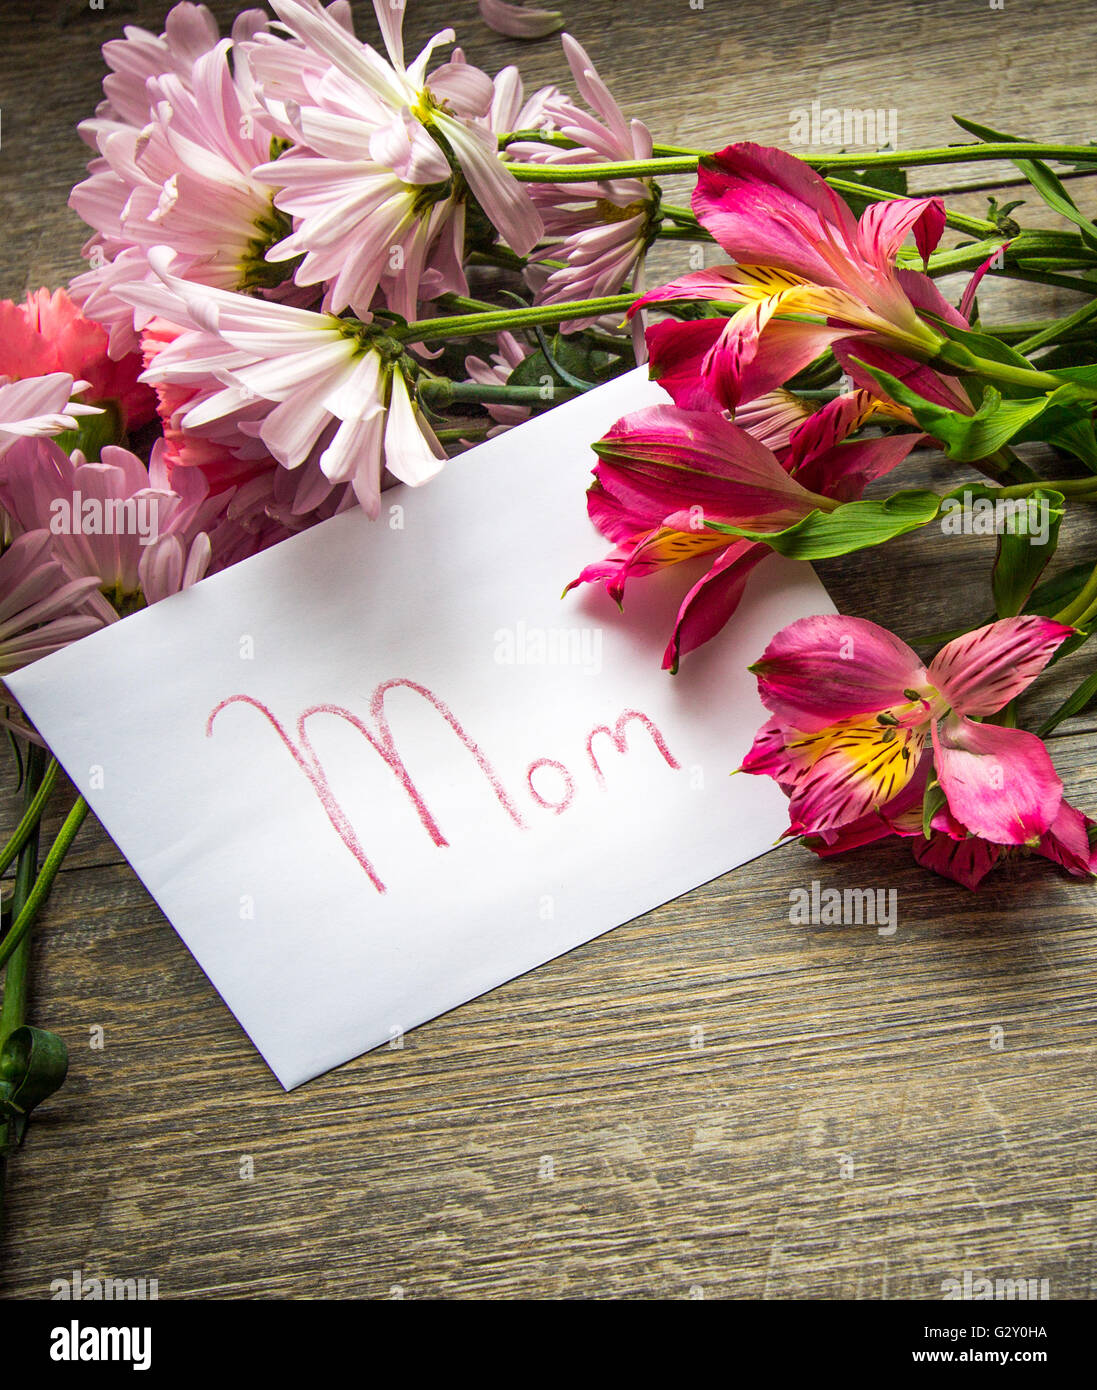 Happy Mothers Day Greeting Card O For Mom With Fresh Cut Flower